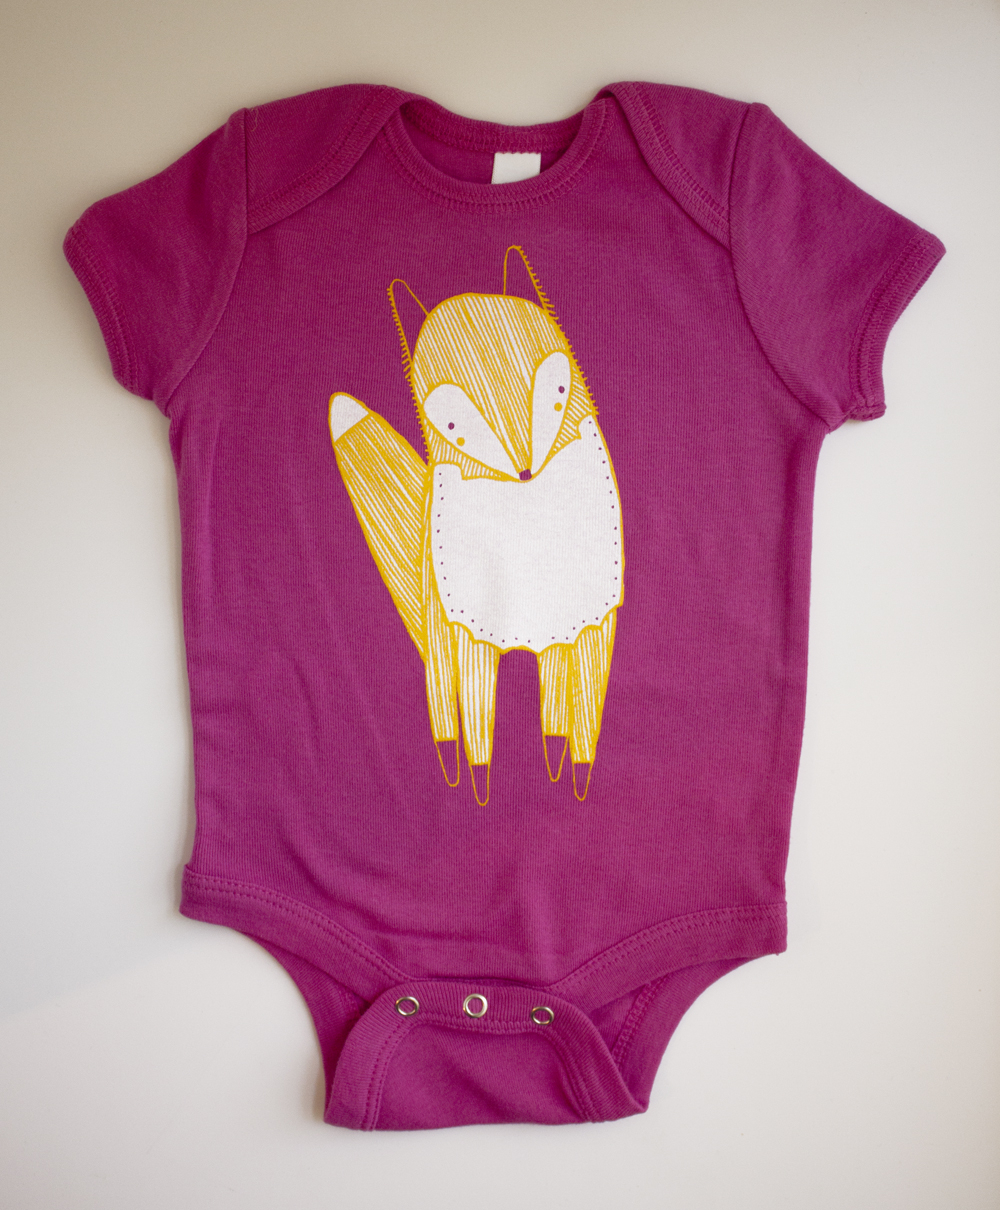 ve just added a new fox onesie design to Gingiber !